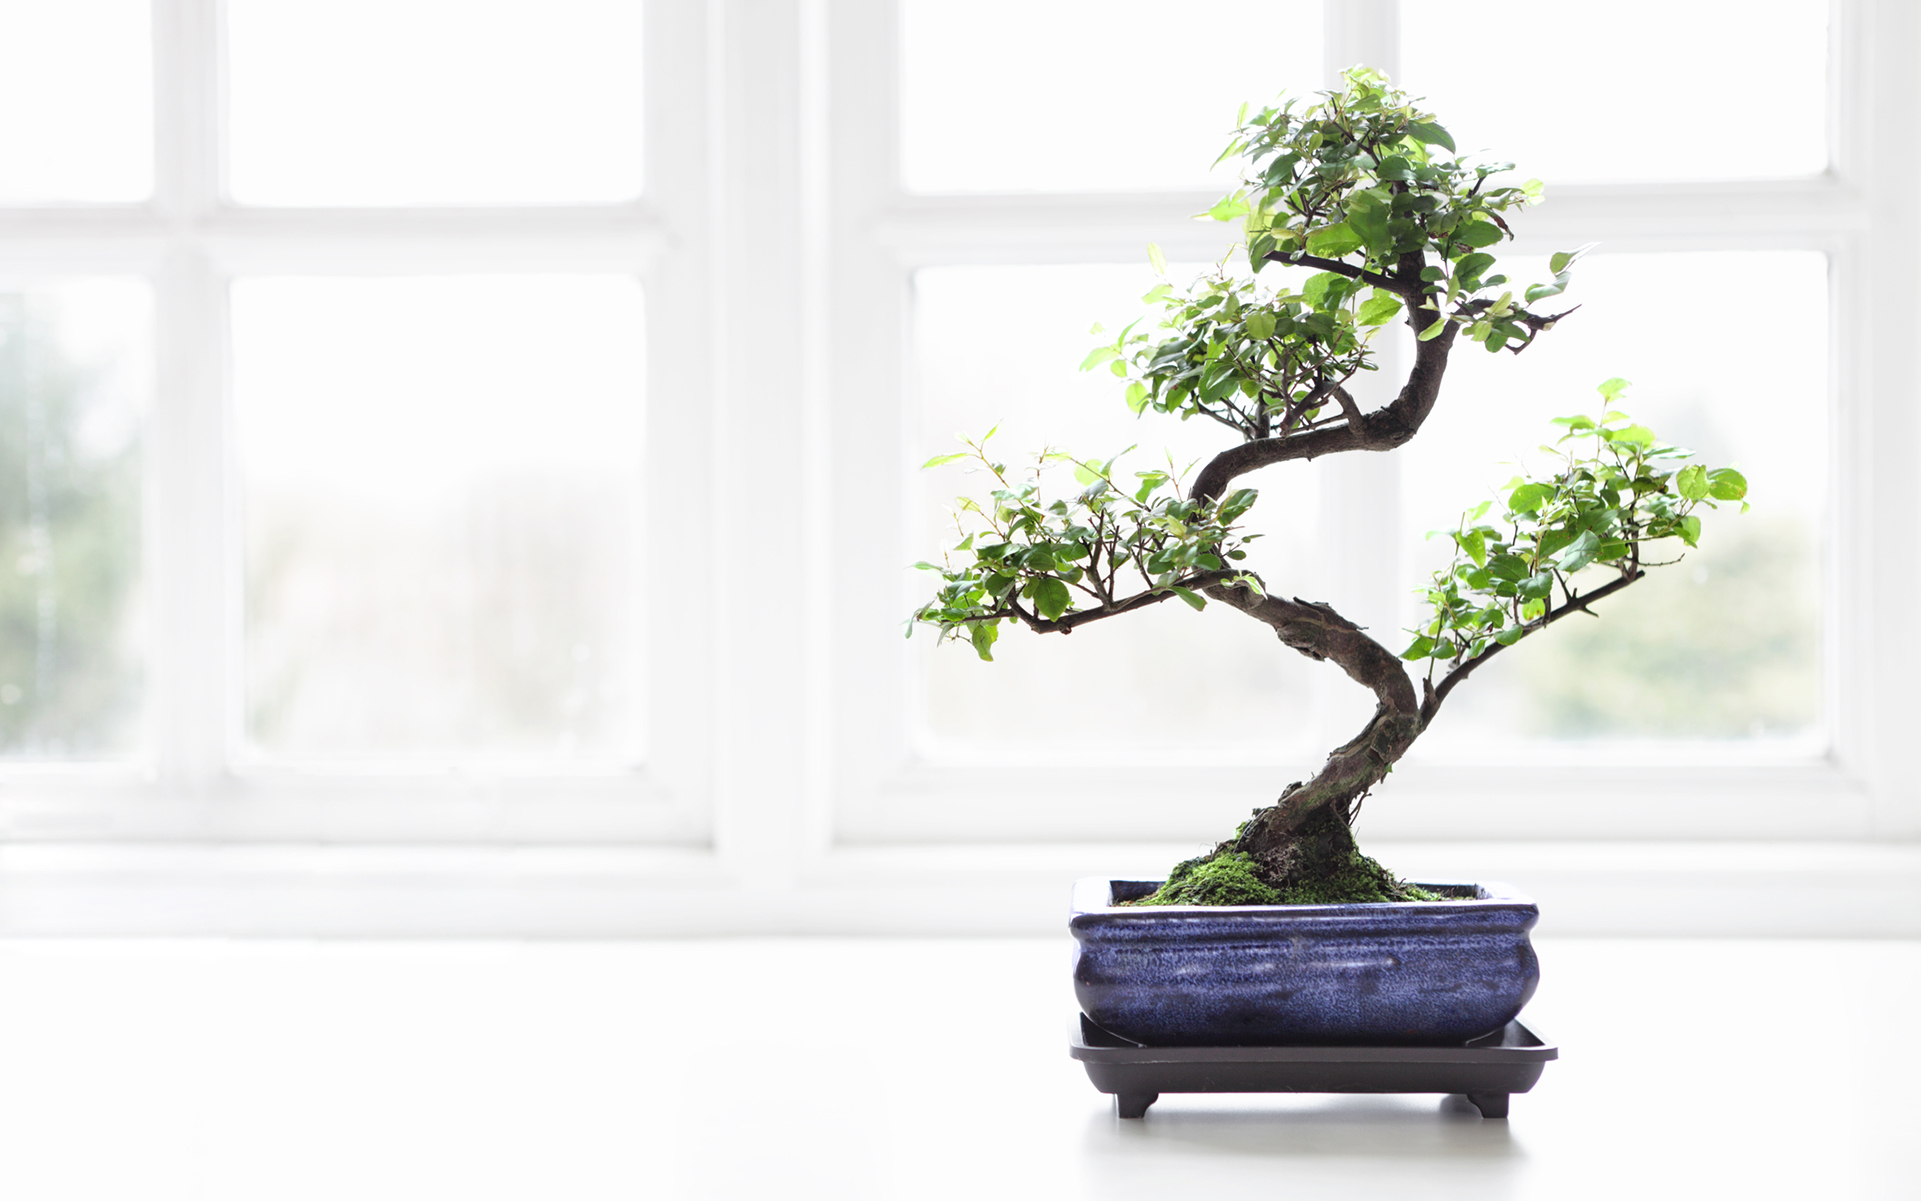 Growing Cannabis Bonsai Trees Separating Fact From Fiction Leafly